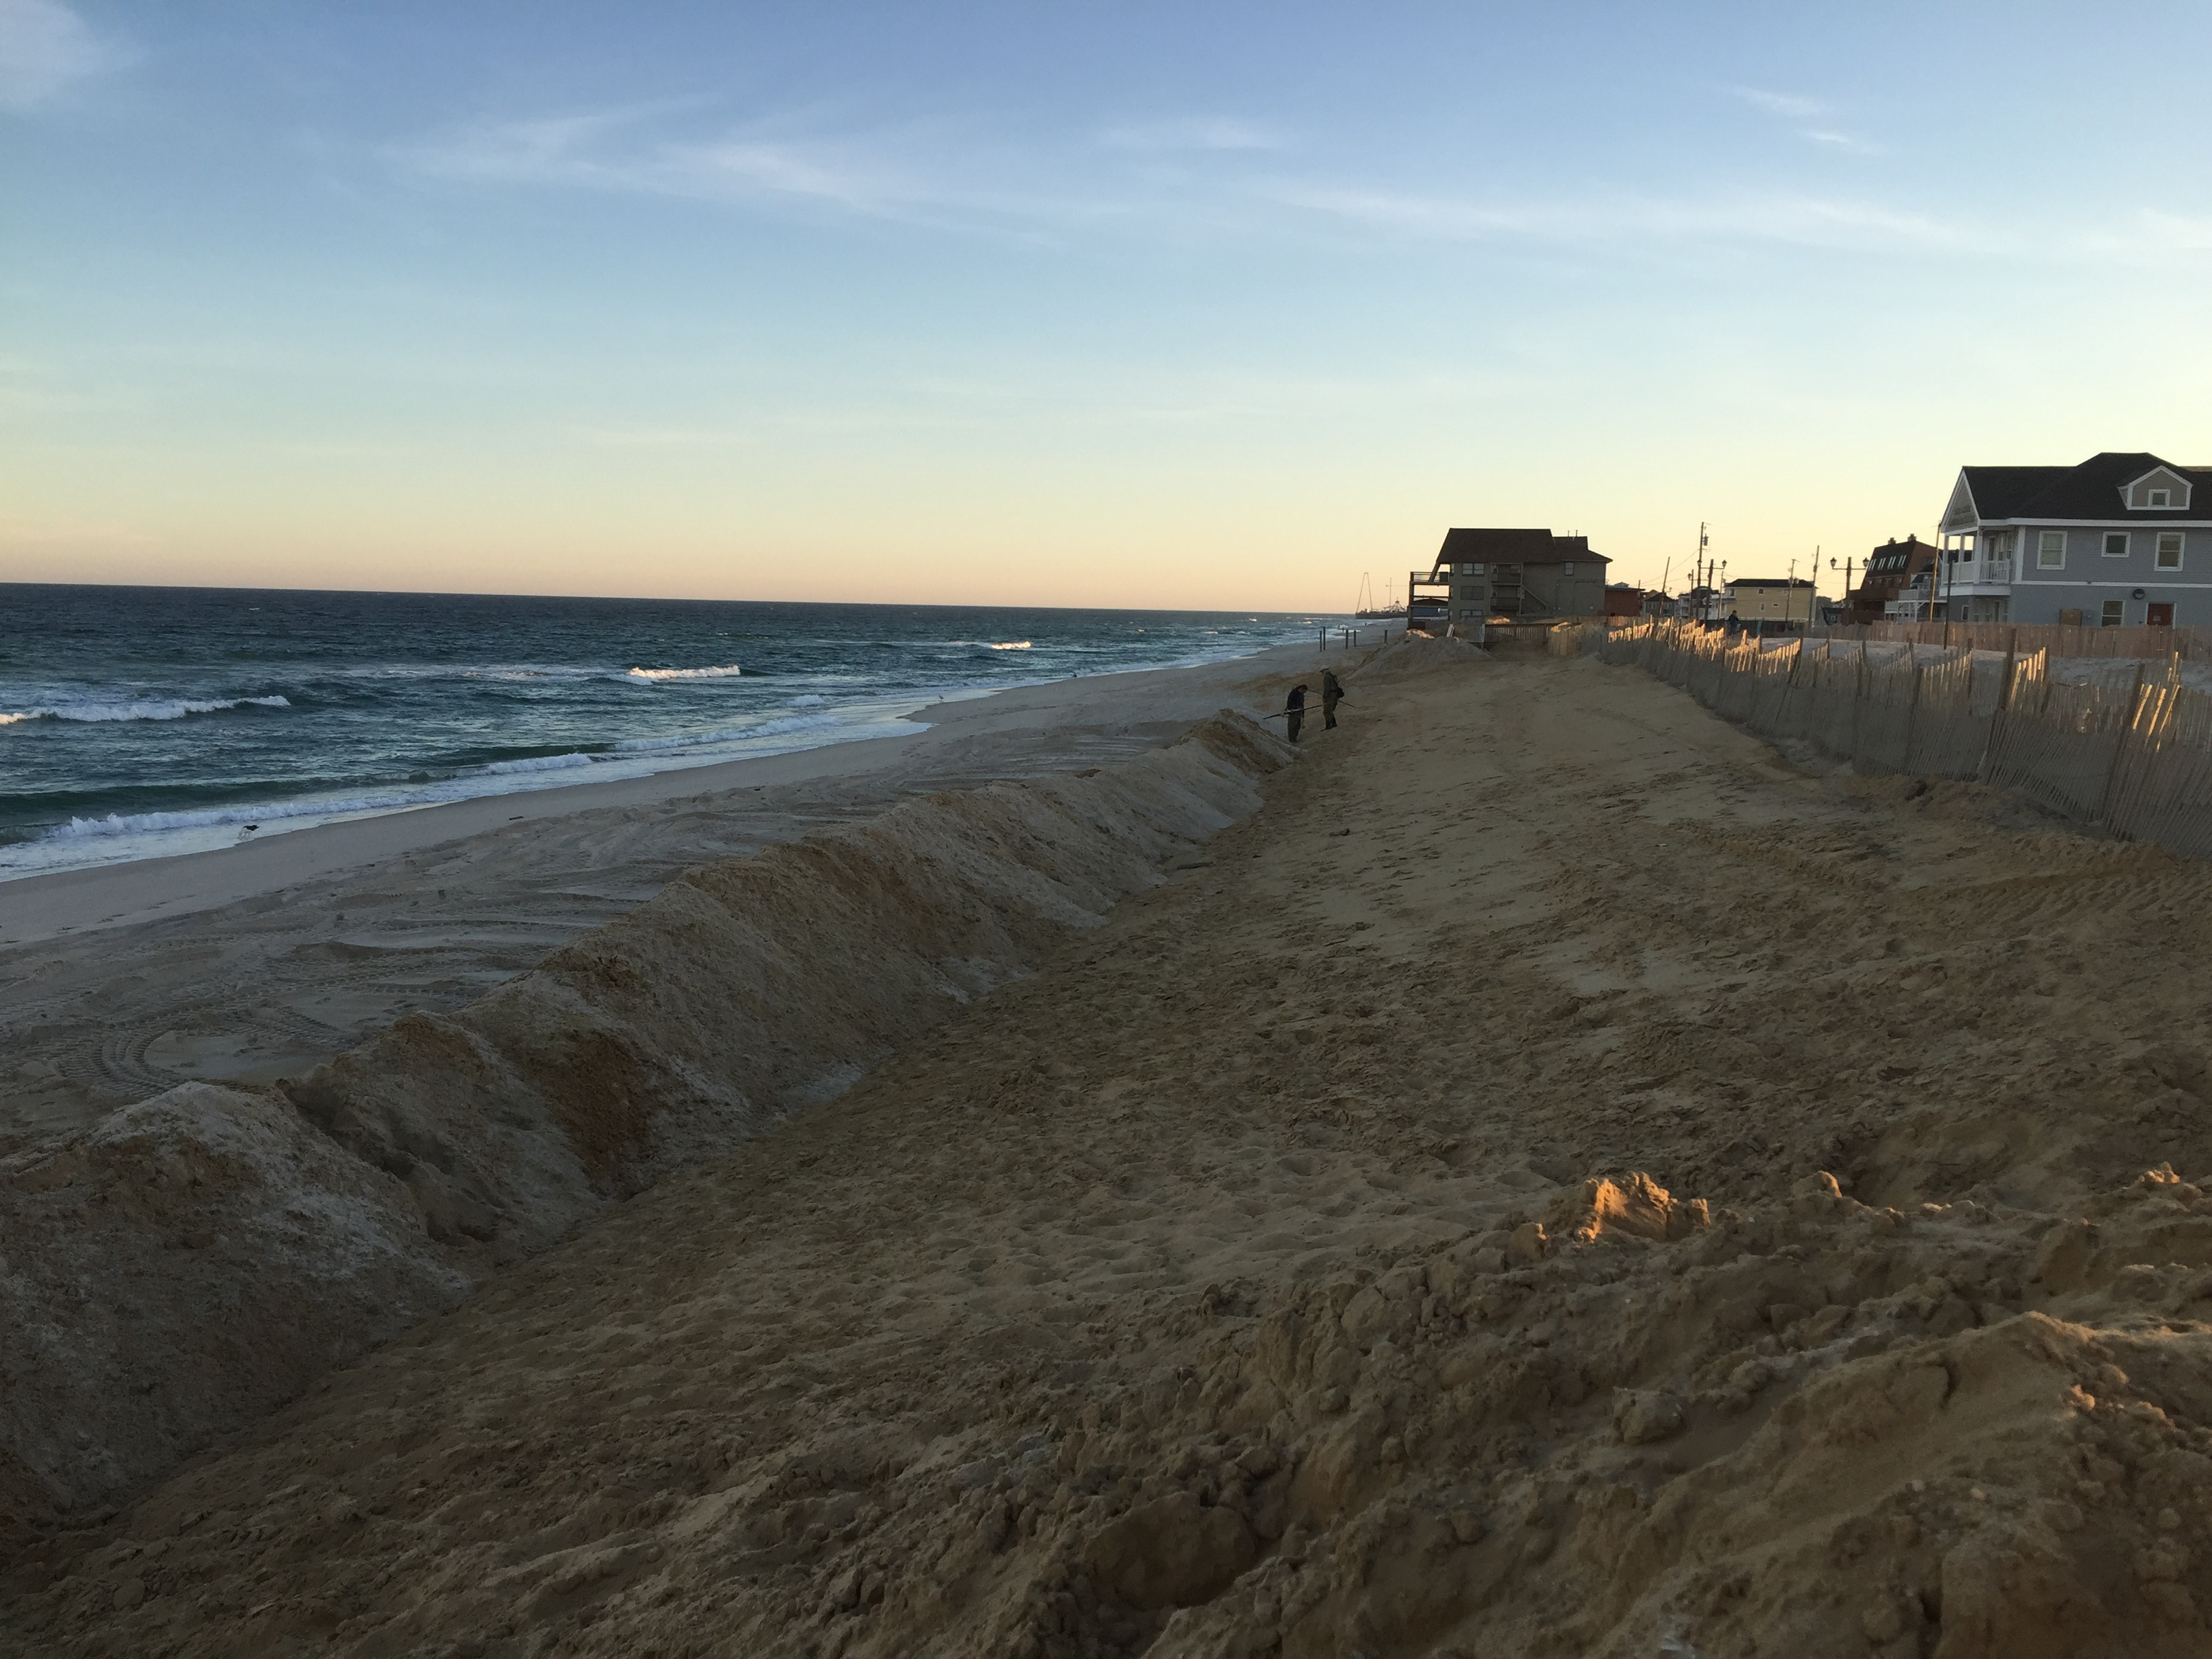 Ortley Beach's battered oceanfront, Oct. 21, 2015. (Photo: Daniel Nee)